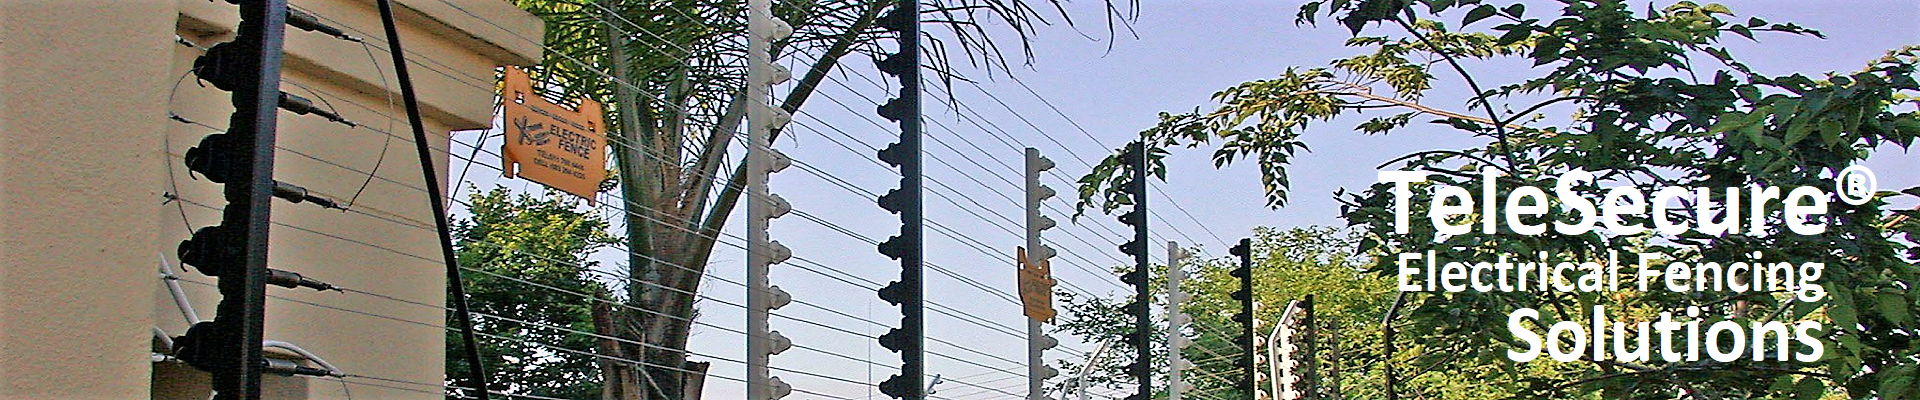 Wondrous Electric Fencing Telemax Solutions Wiring Cloud Orsalboapumohammedshrineorg